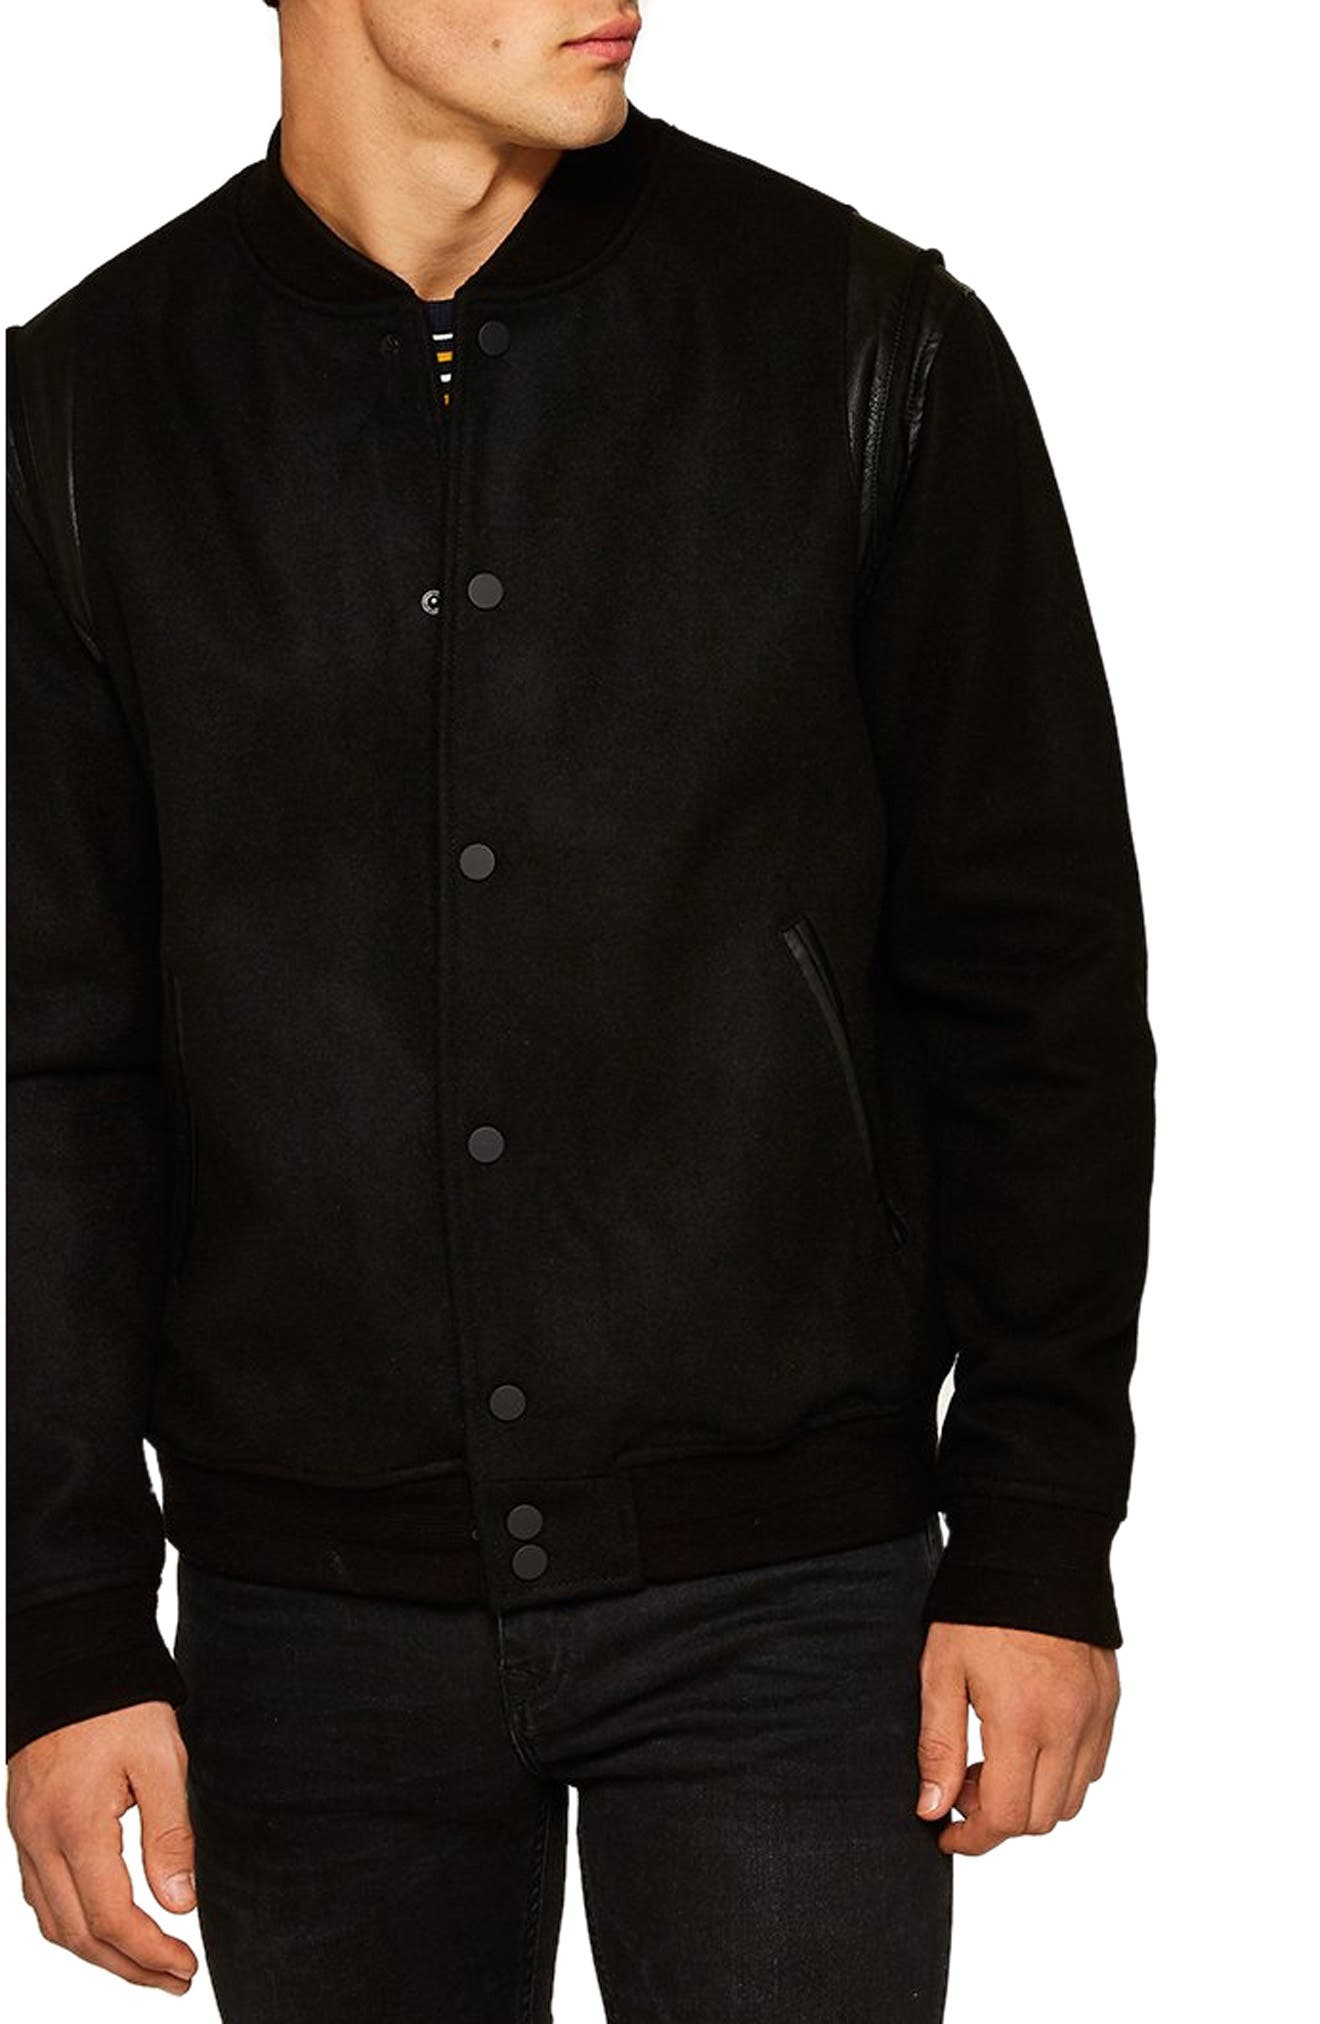 Wool Blend Varsity Jacket,                         Main,                         color, BLACK